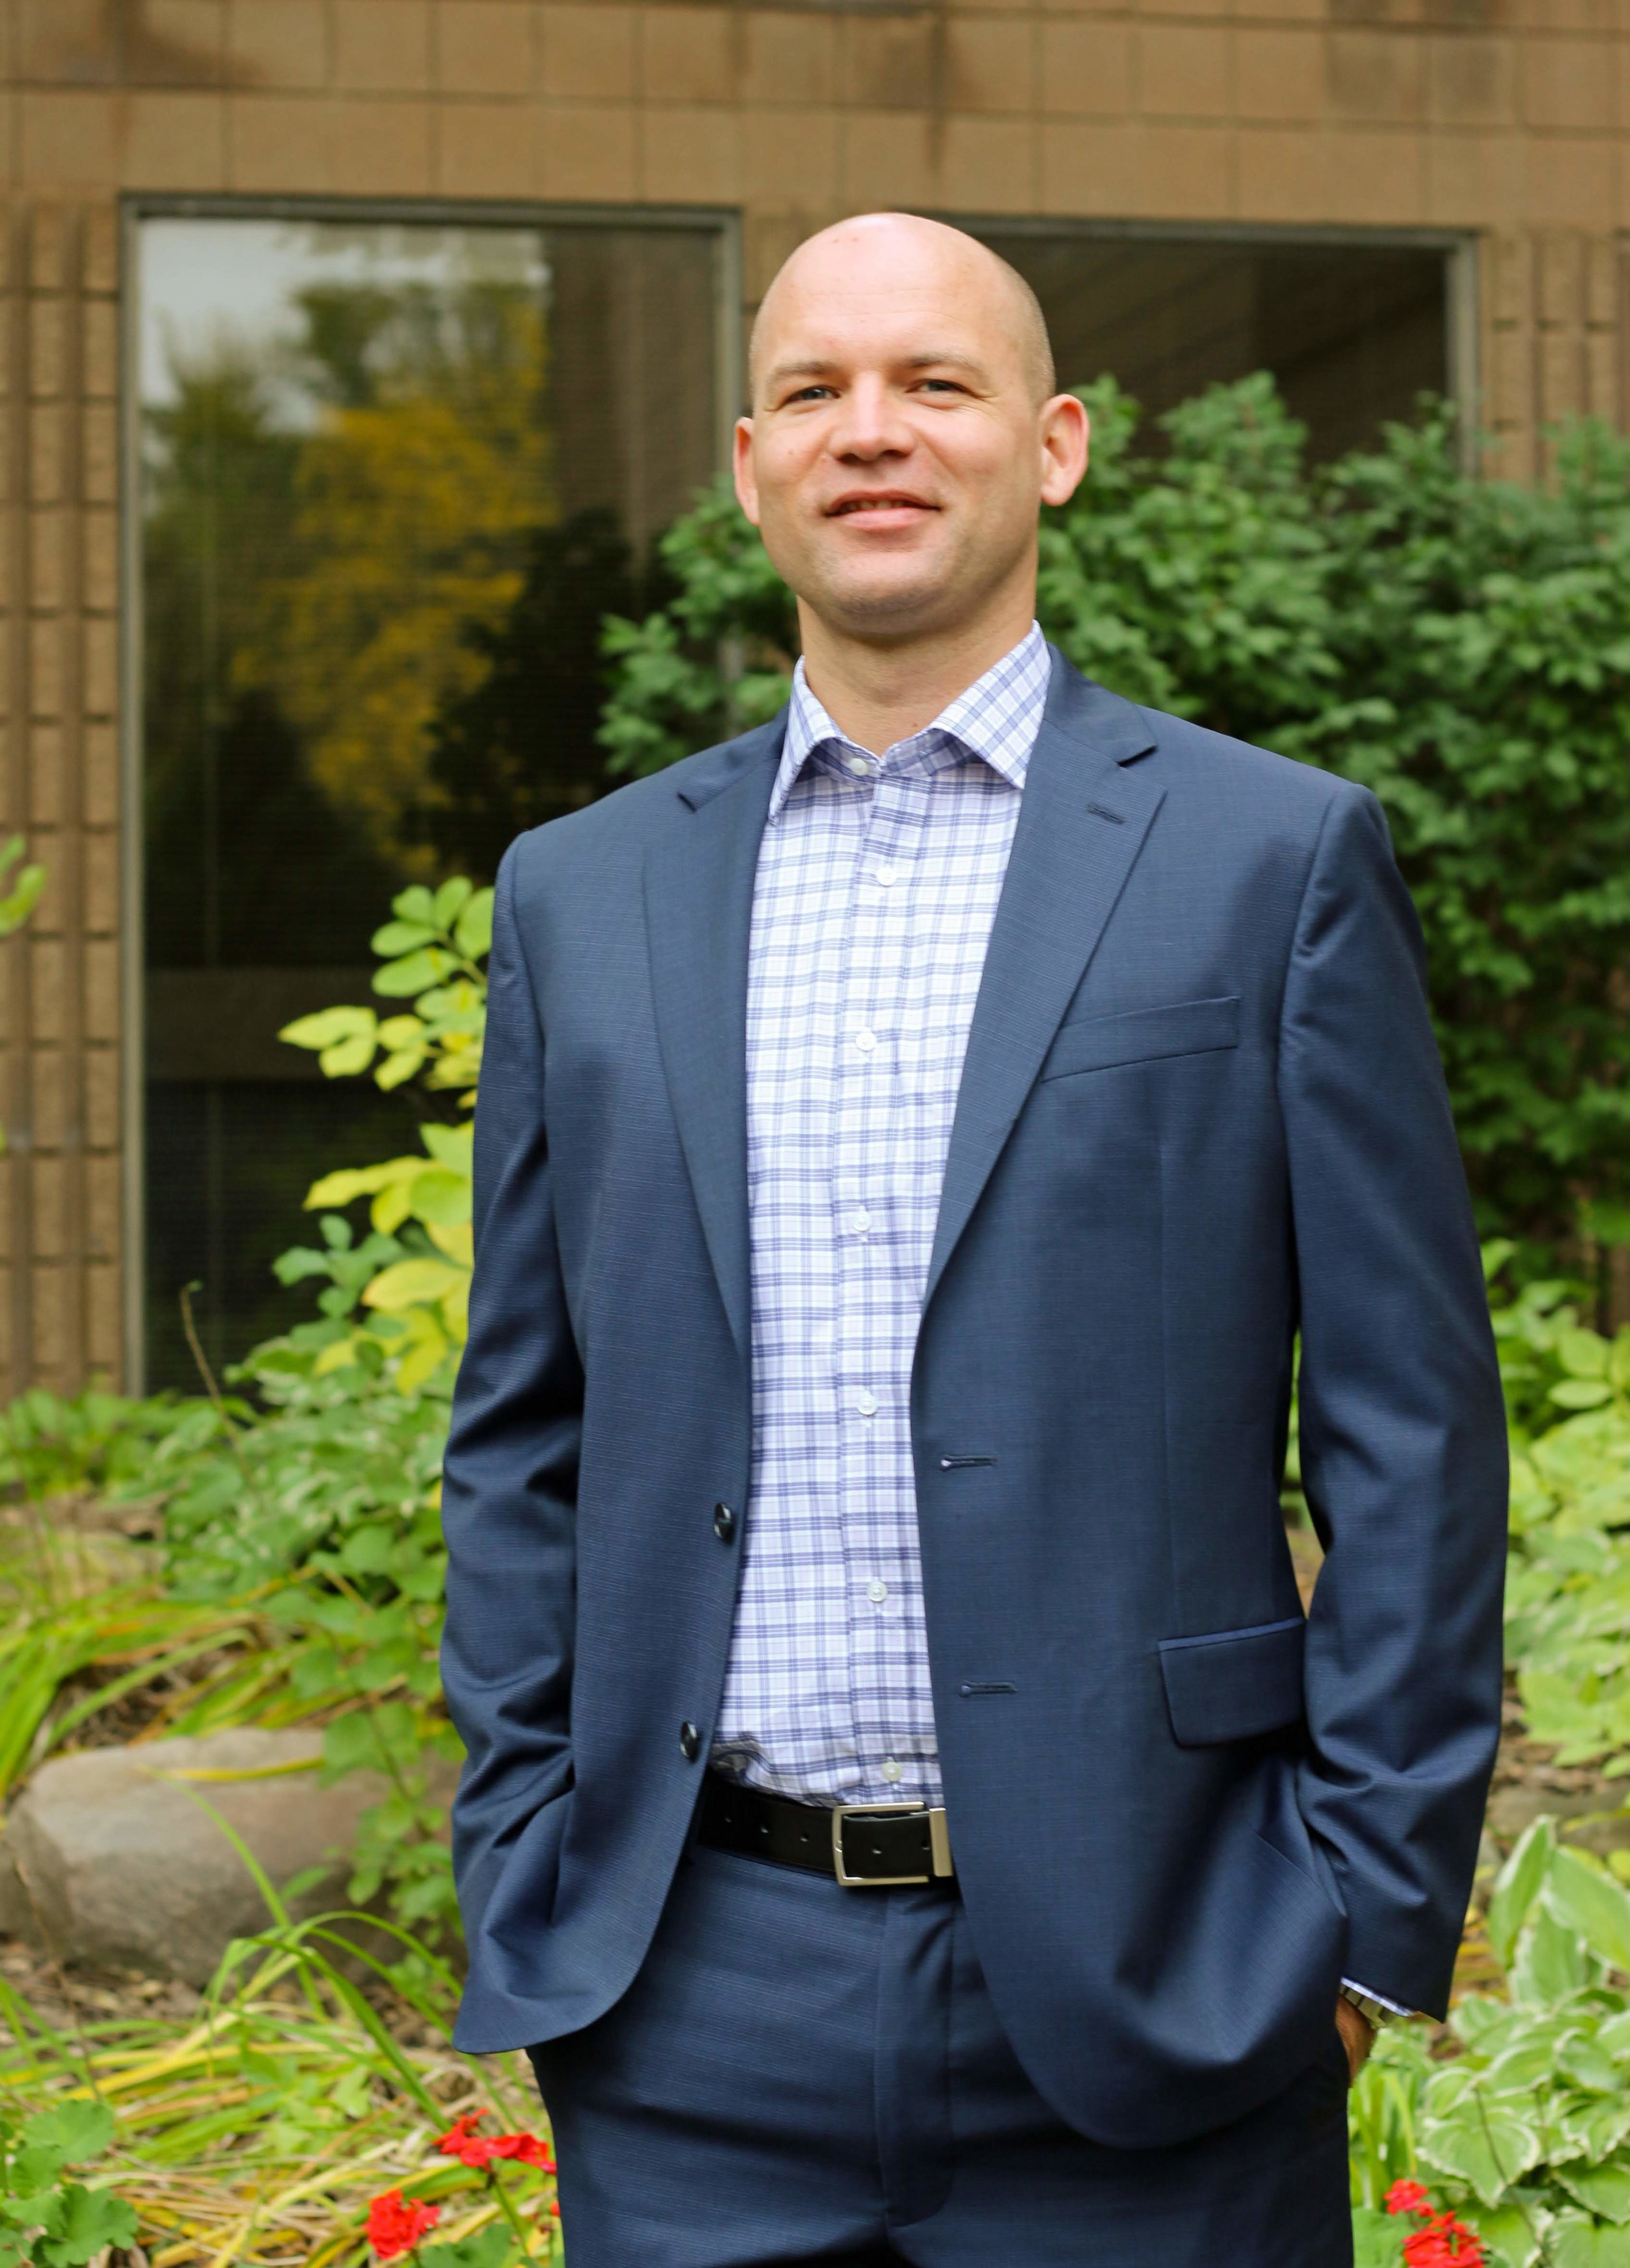 "Nick Van Beek - Lead PastorPastor Nick affirms, ""I will boast all the more gladly about my weaknesses, so that Christ's power may rest on me,"" from 2 Corinthians 12:9. He believes the first step of following Jesus is admitting our failures. This begins a life committed to Christ and to his justice, peace, and reconciliation he brings to this world. Pastor Nick received his Bachelors of Science from Reformed Bible College and his Masters of Divinity from Calvin Theological Seminary. He is happily married to his wife, Carrie, and loves hanging out with his 2 daughters, Madelyn and Lillian. Pastor Nick enjoys reading, yard work, and biking all over Minnesota.pastornick@calvarycrc.net952-831-6264"